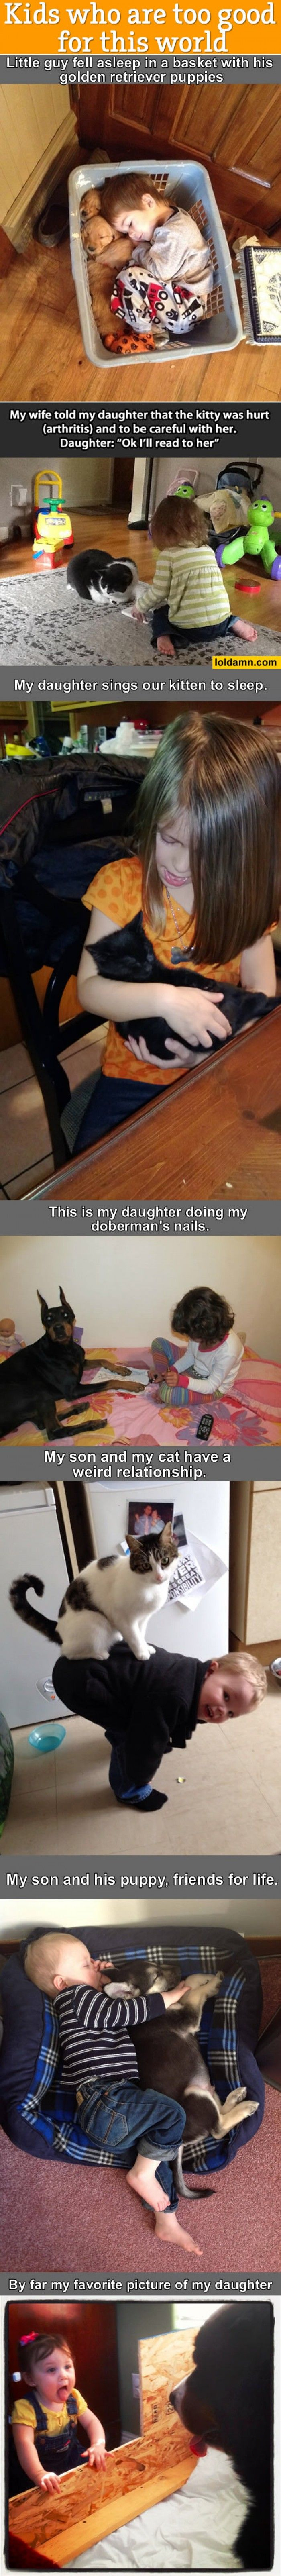 best puppys dogs images on pinterest animal beautiful and circles